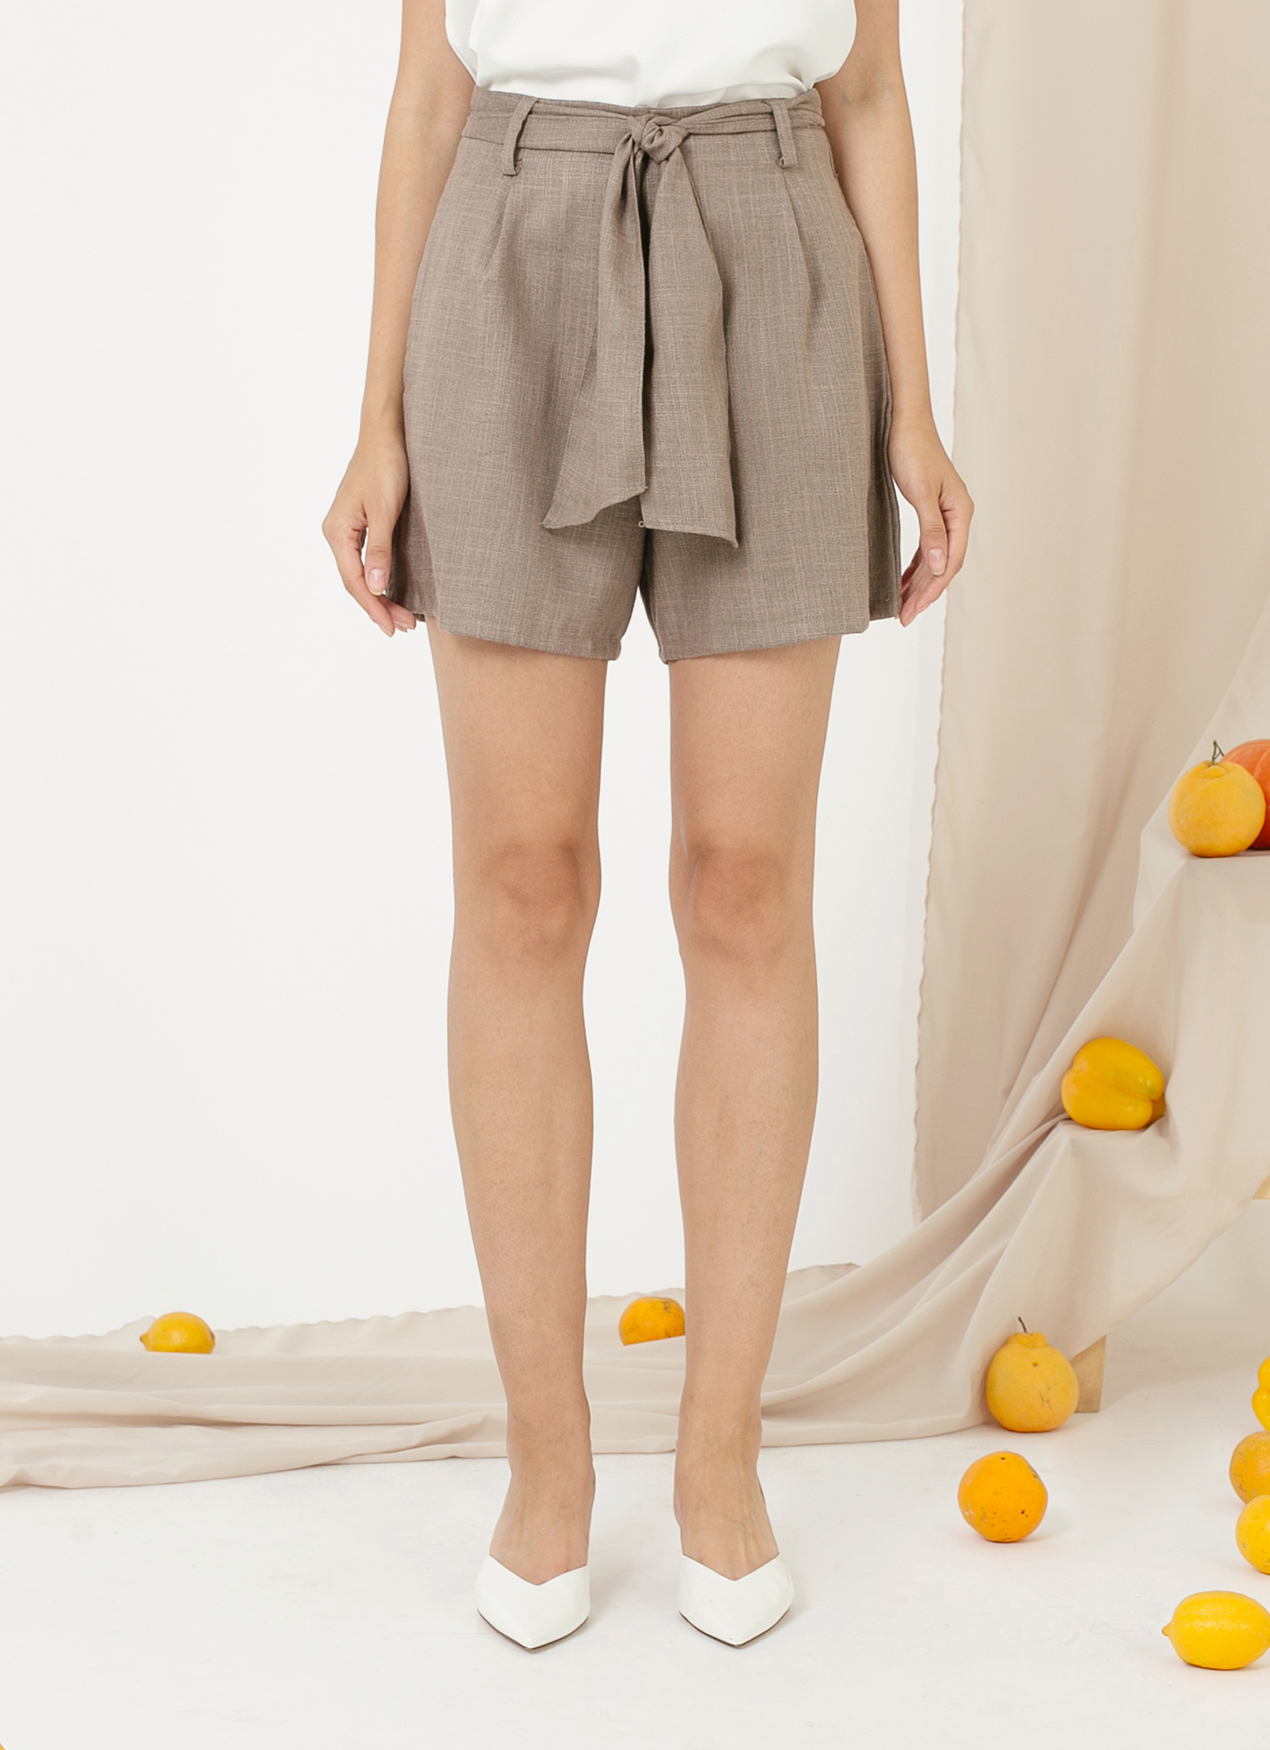 CLOTH INC Louise Shorts - Taupe